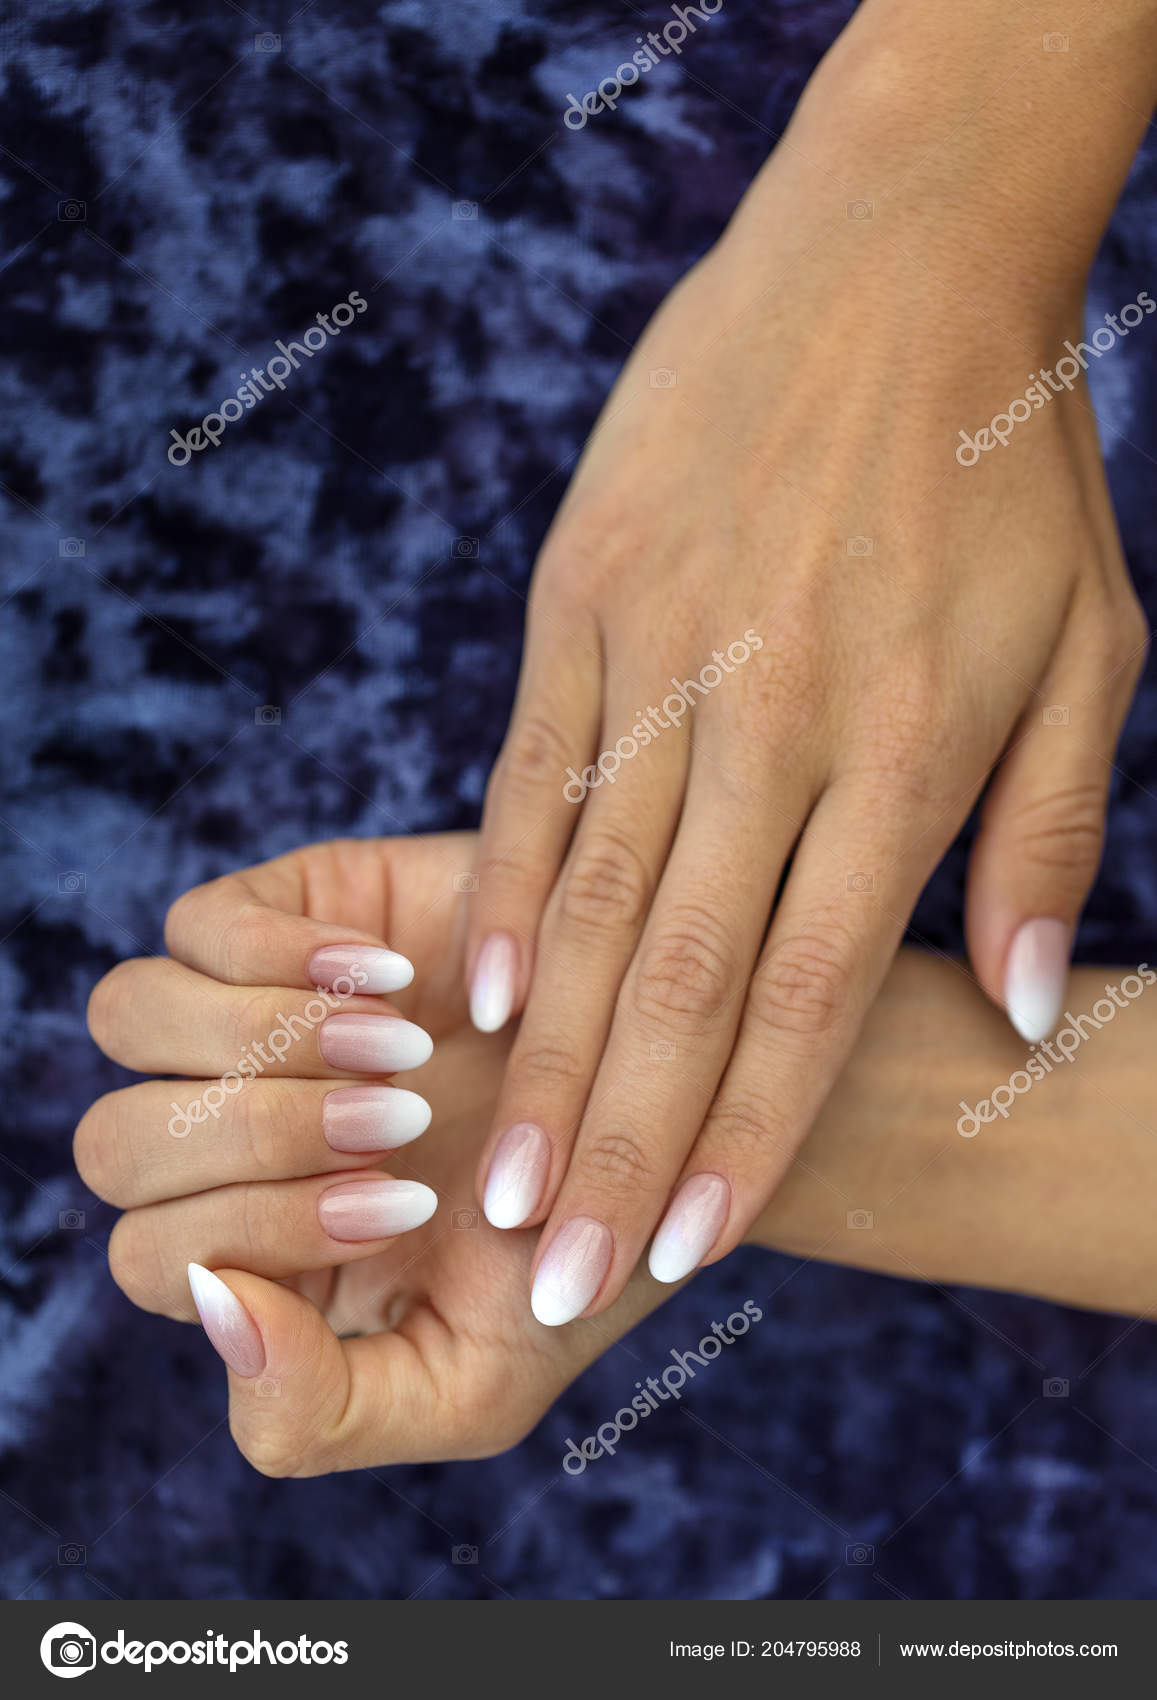 Pictures Ombre Nails Beautiful Woman Nails Beautiful French Manicure Ombre Peach White Stock Photo C Photosergii Gmail Com 204795988